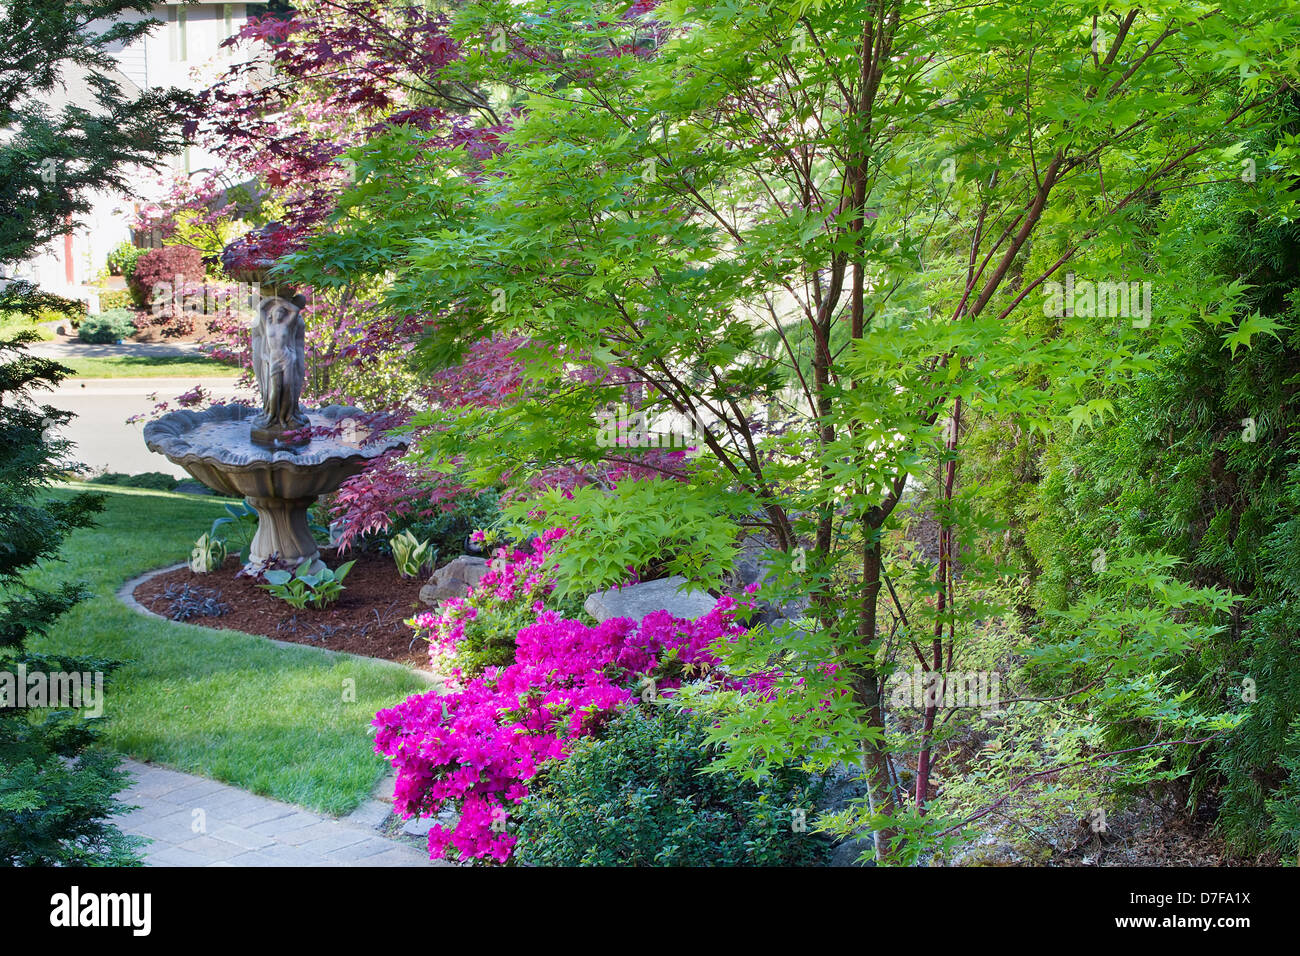 Coral Bark Japanese Maple Tree In Front Law With Water Fountain And Blooming Pink Azalea Flowers